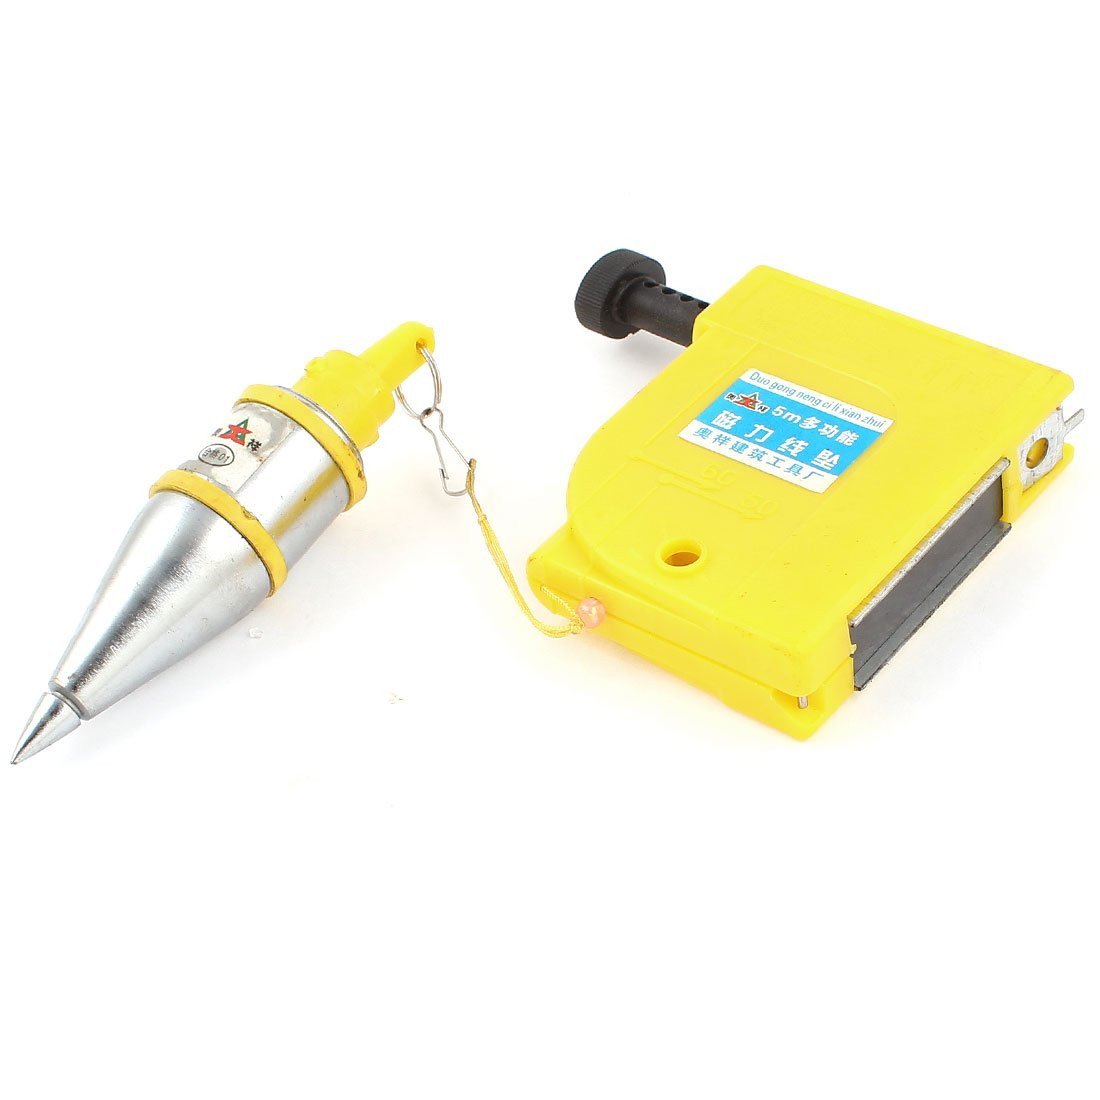 Uxcell a14091200ux0042 Magnetic 400g Plumb Bob Straight Level Setter Test Device 5 Meters